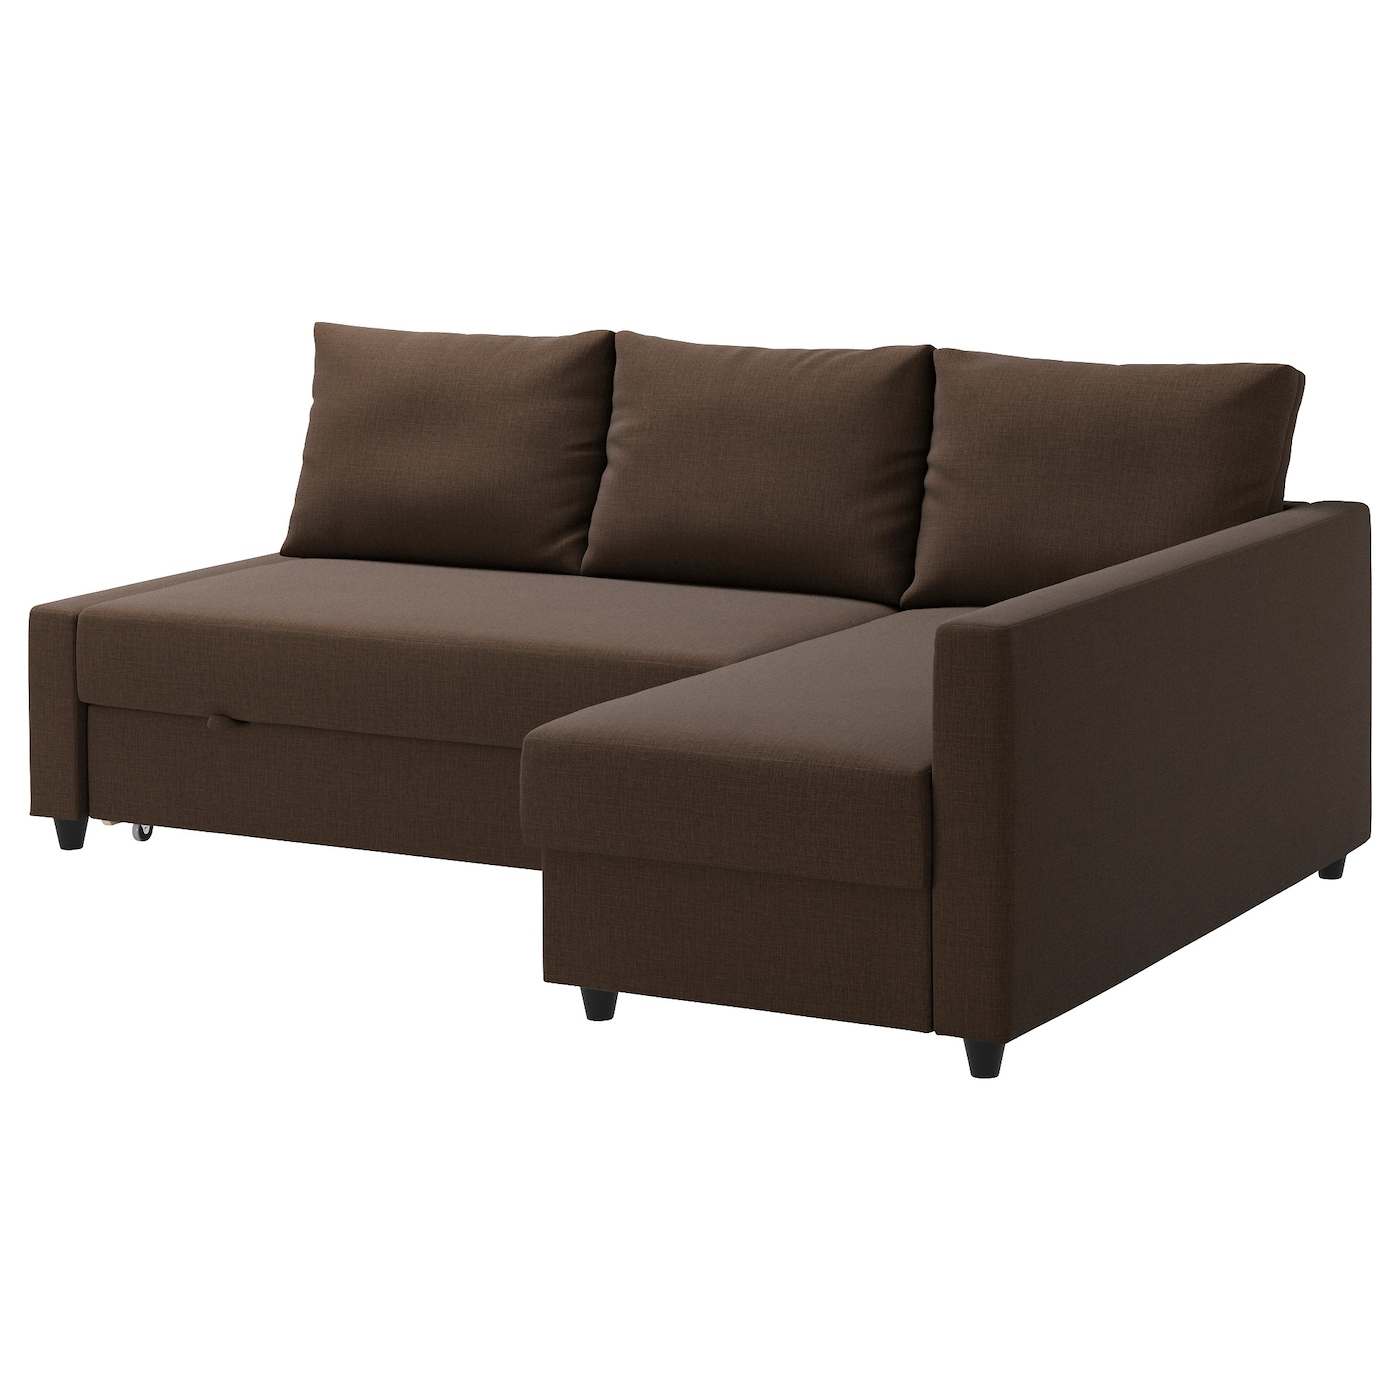 Friheten corner sofa bed with storage skiftebo brown ikea for Ikea corner sofa